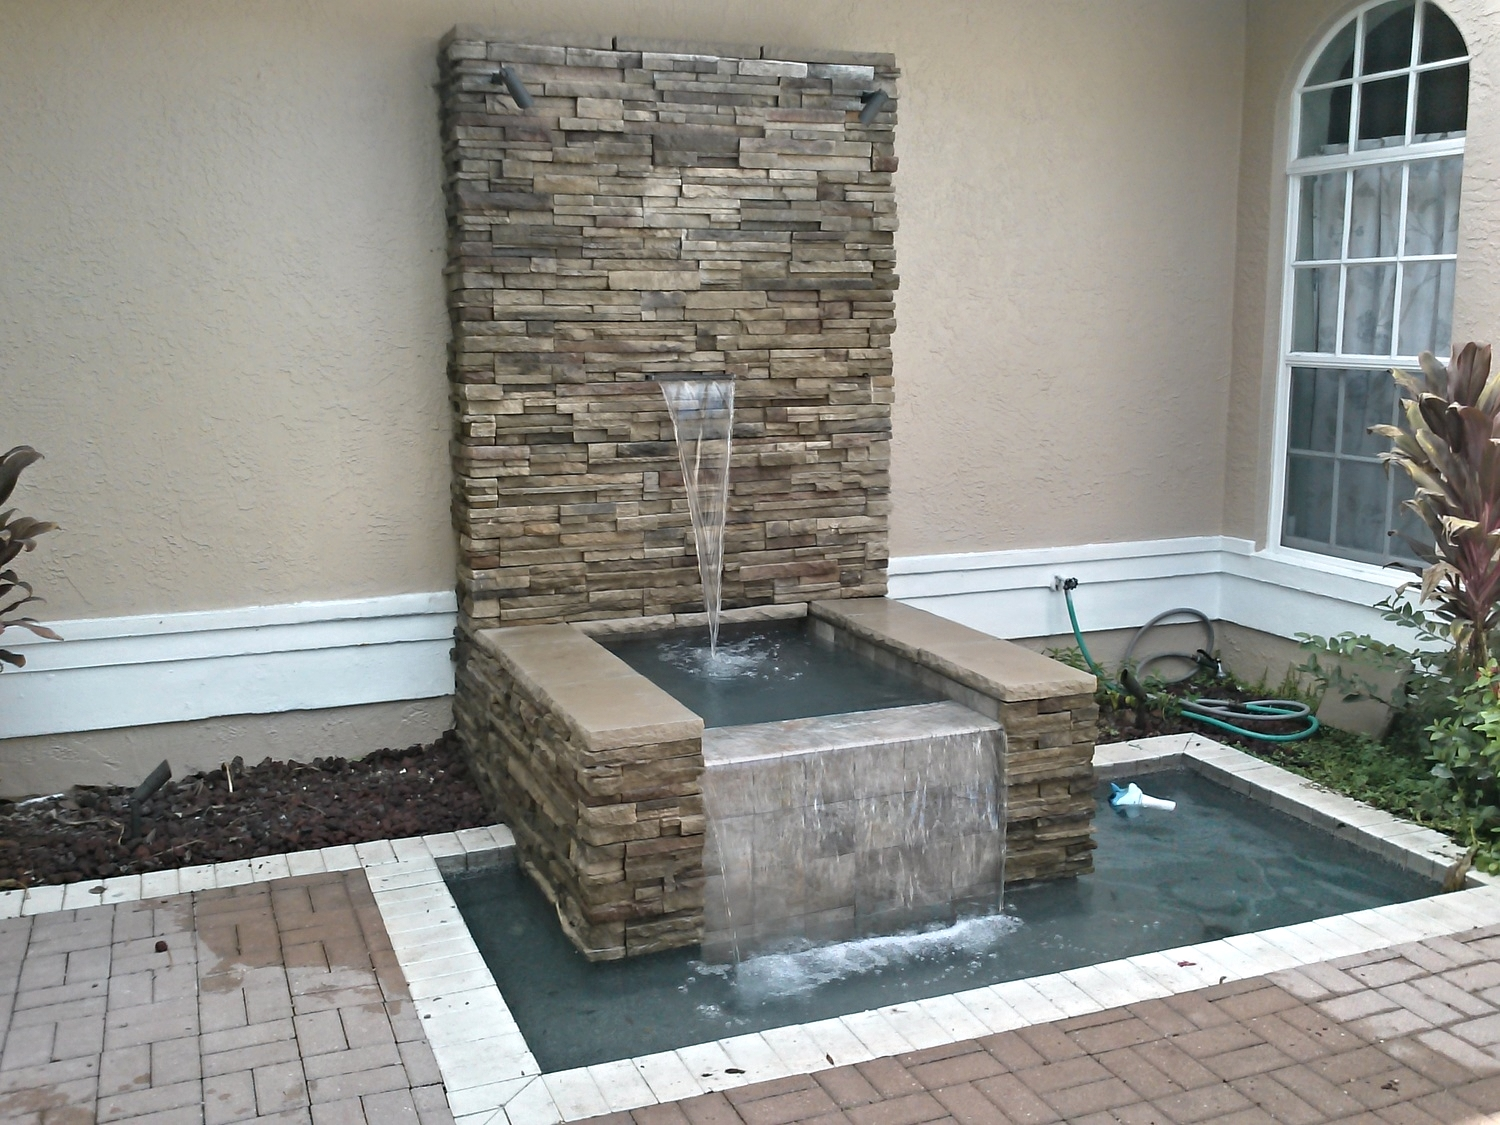 We modernized the water feature, and added matching stackstone to tie it in with the new feel of the living space.